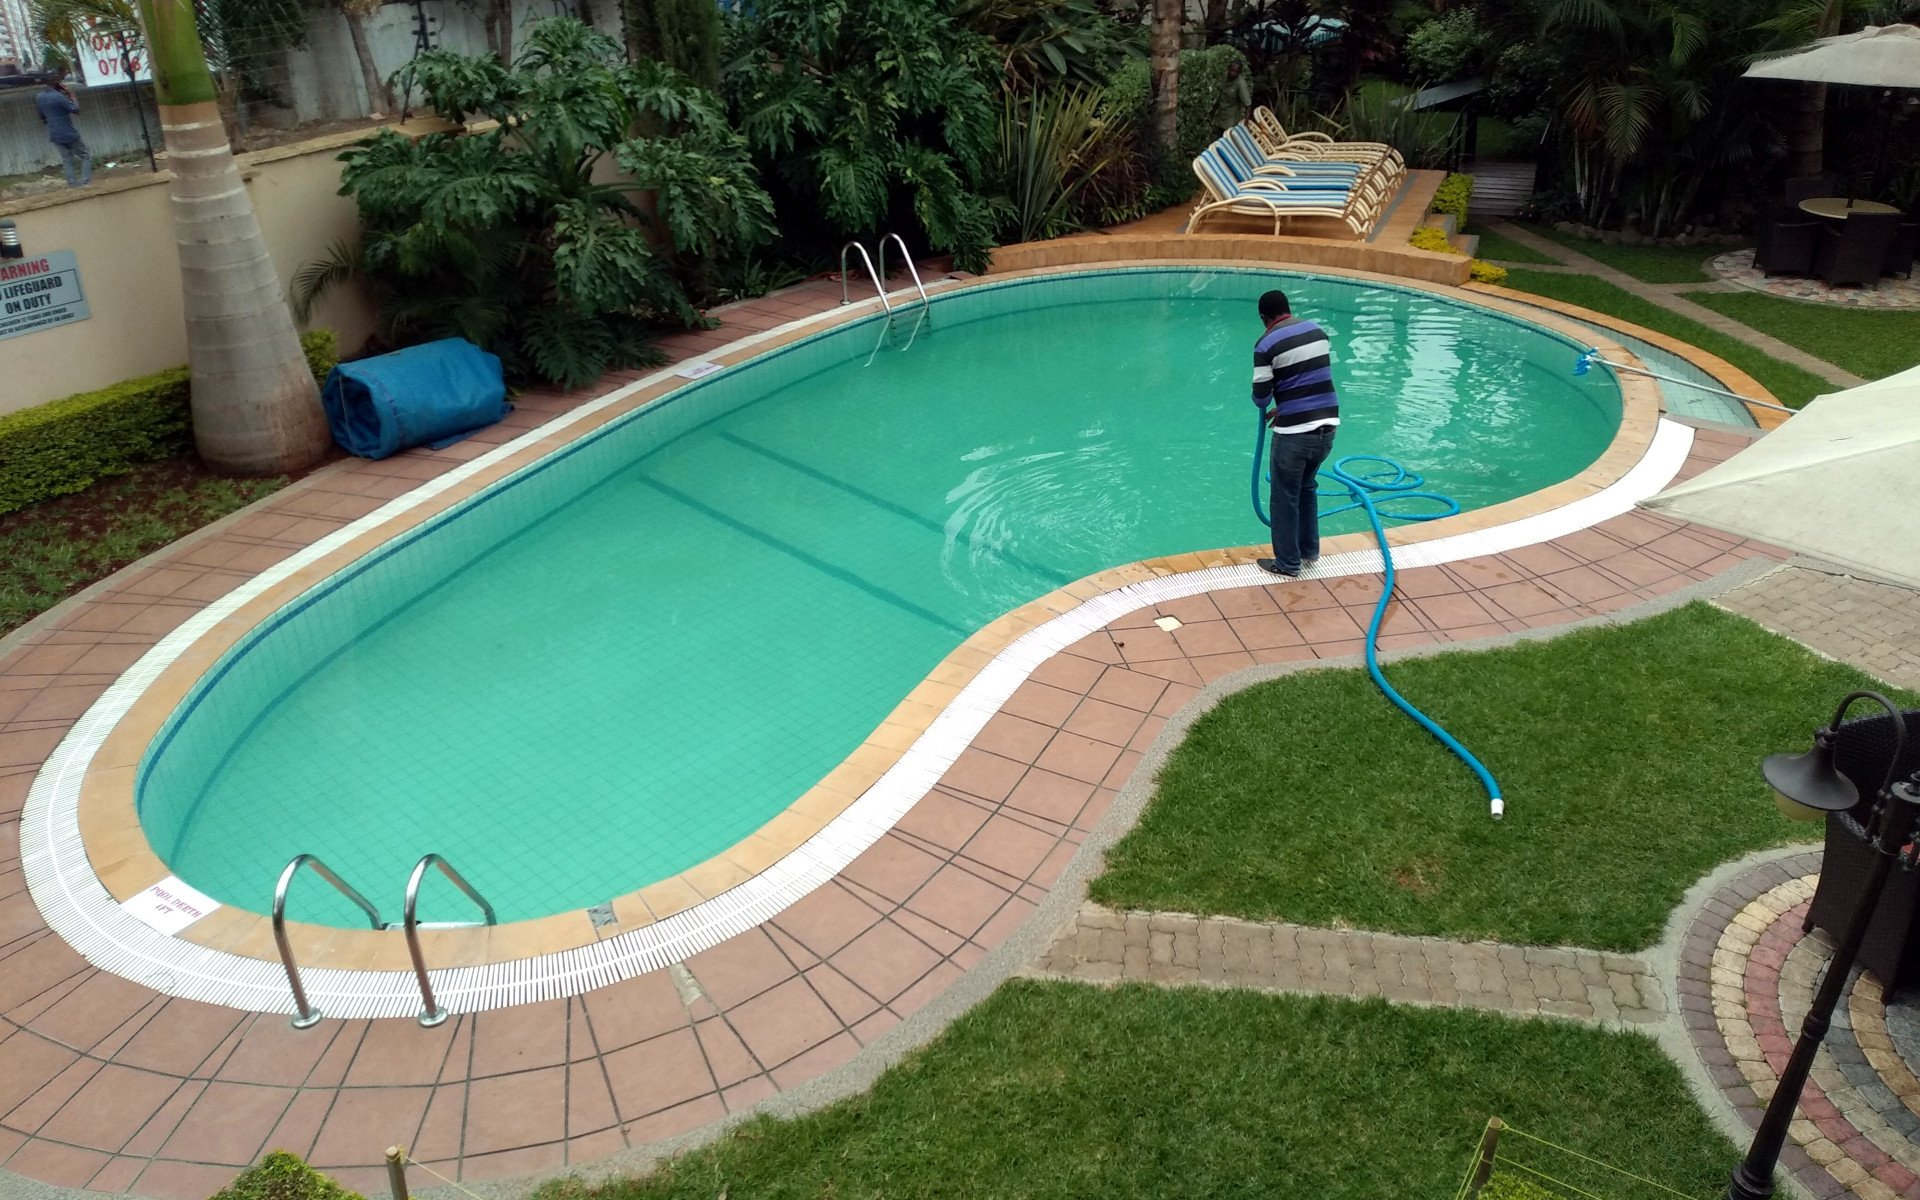 As swimming pools become standard features in most travelling experiences, swimming pool etiquette also becomes paramount. Here are 6 tips to use.